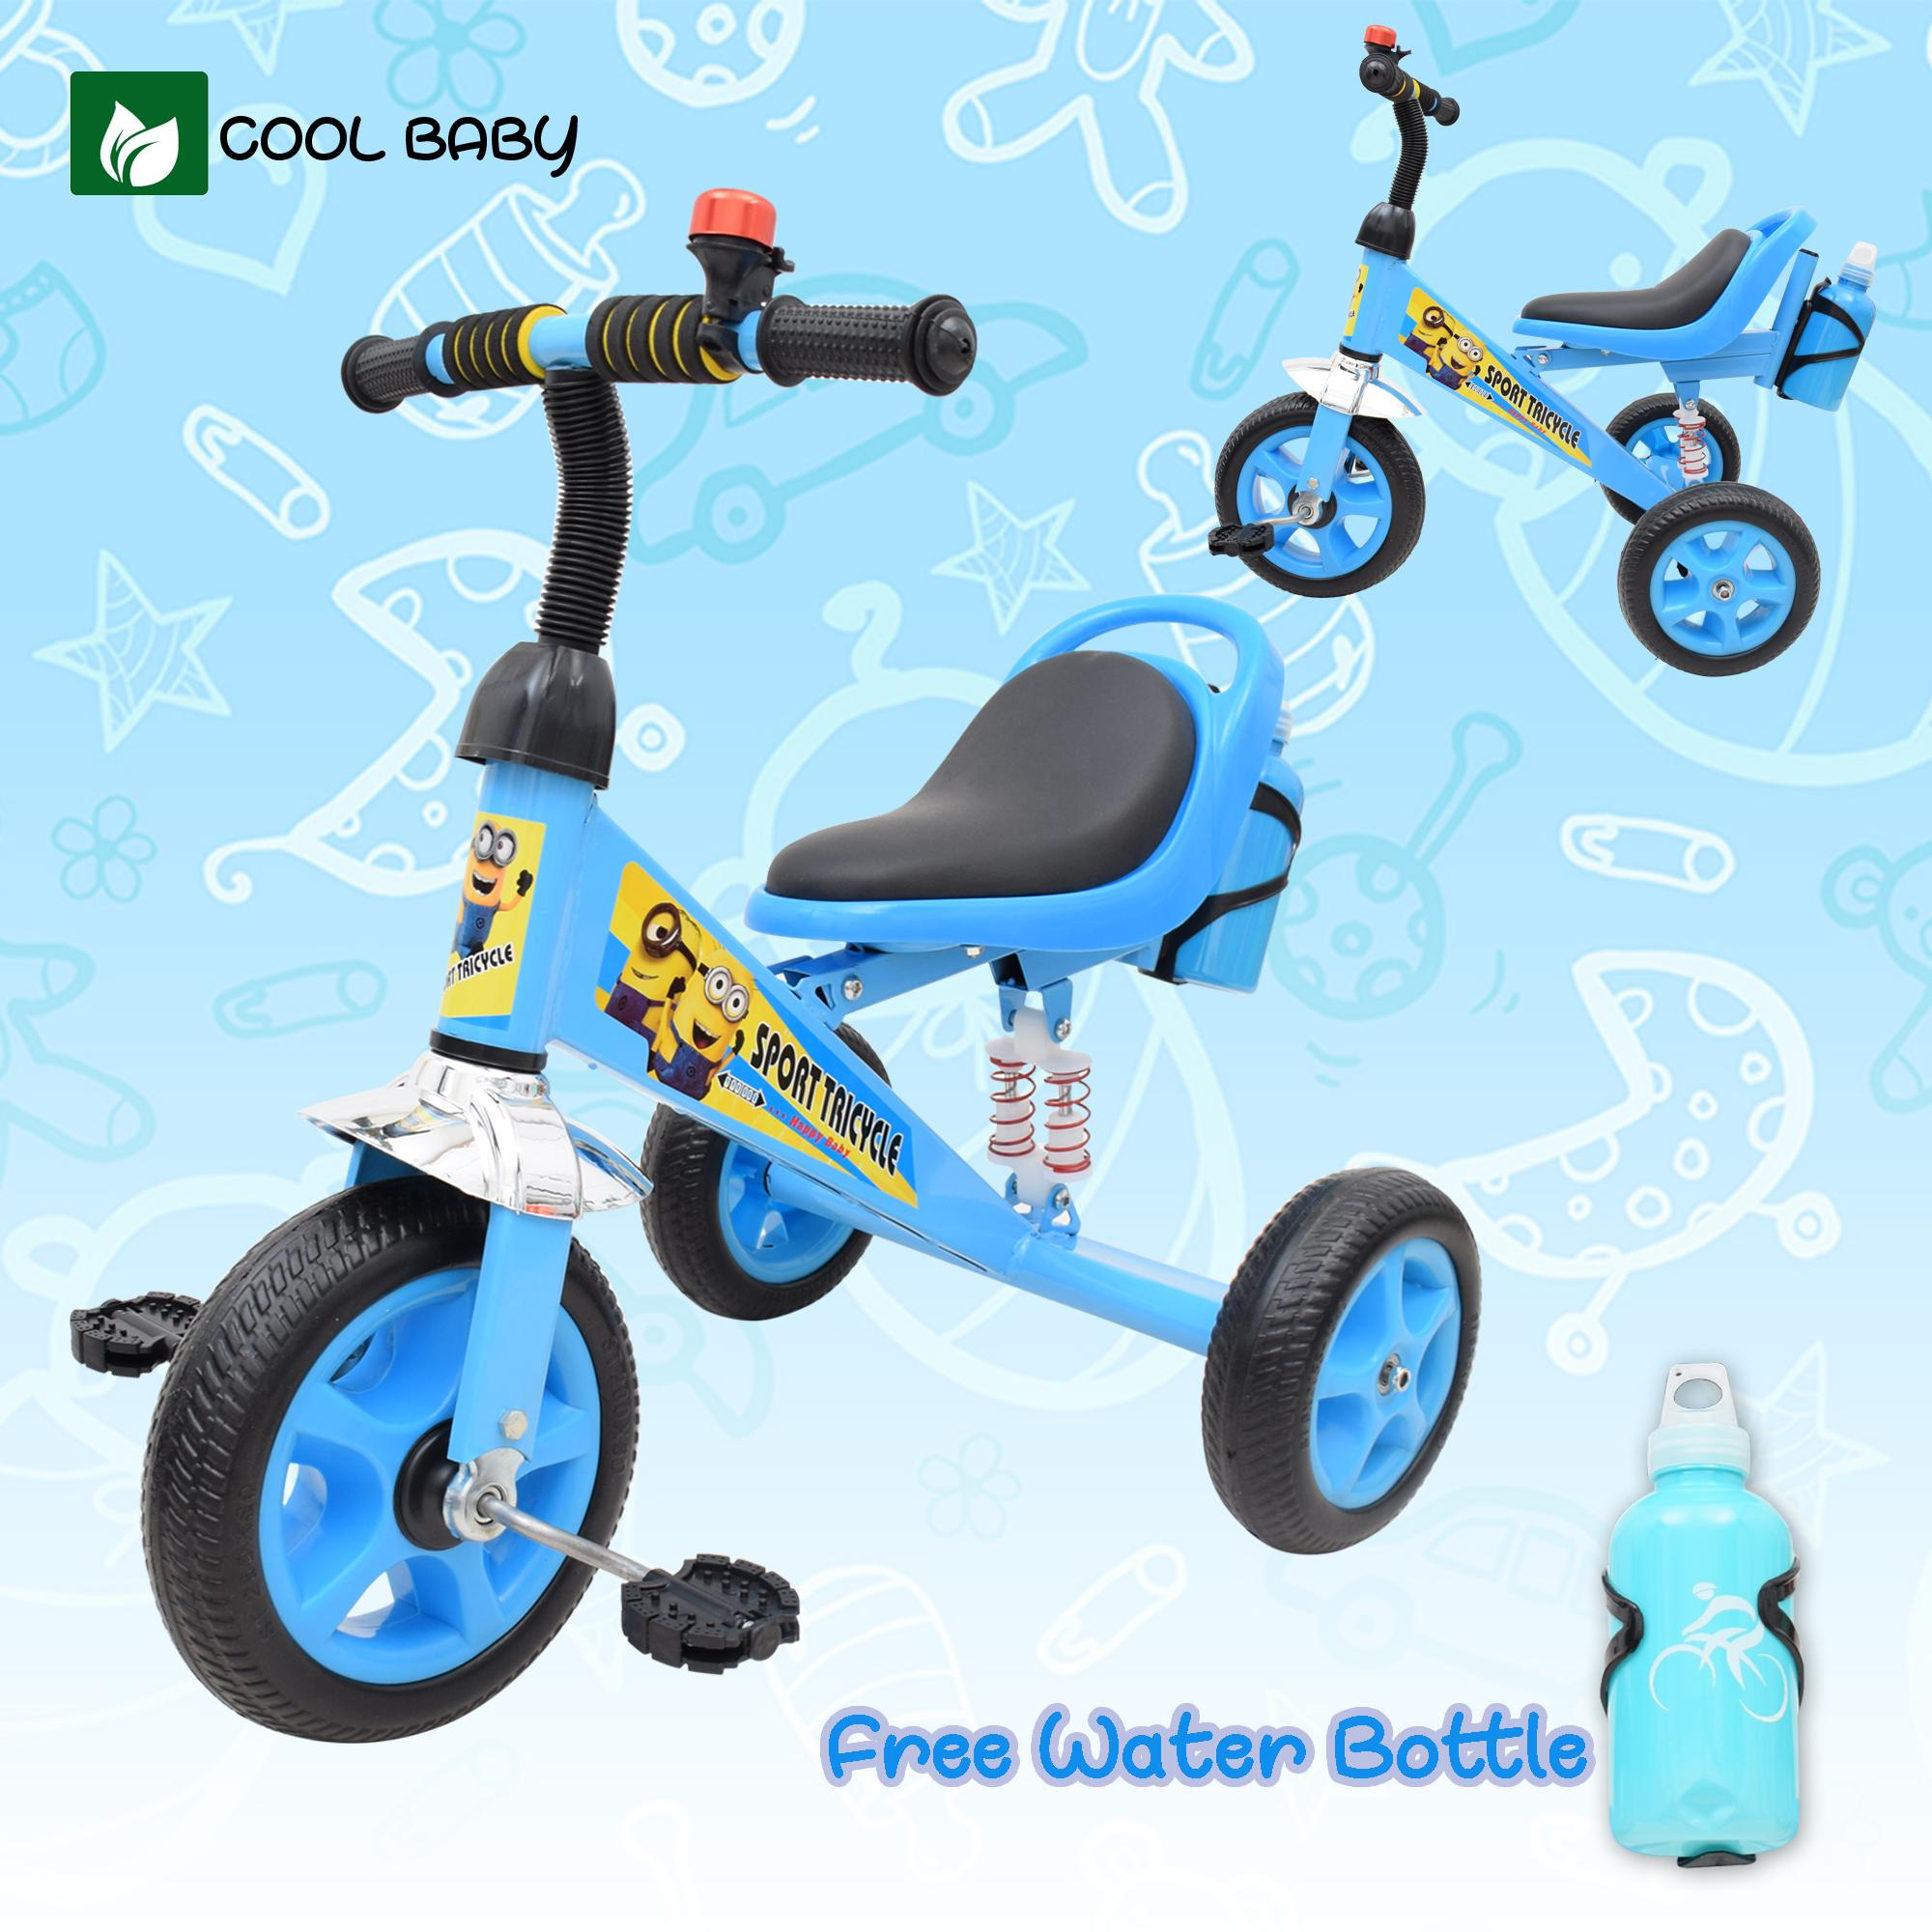 Kids Bikes for sale - Bicycles for Kids Online Deals